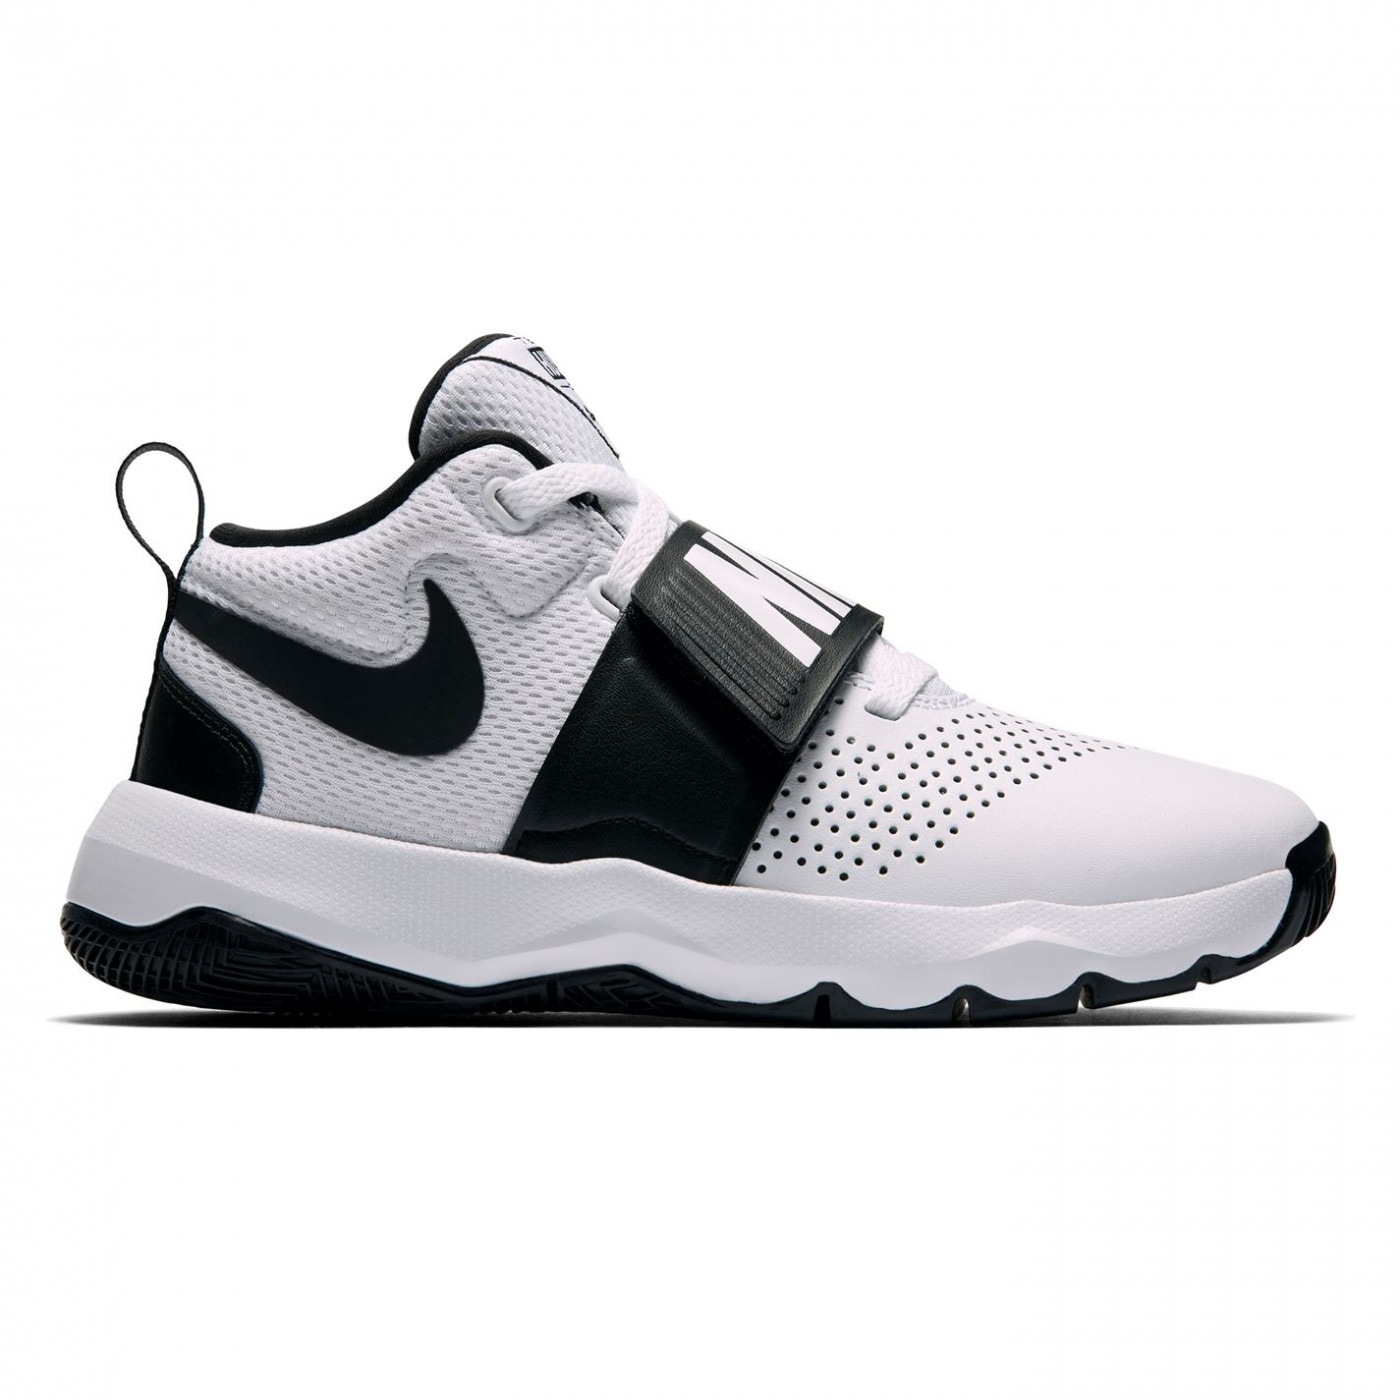 Nike Team Hustle D8 Childrens Basketball Trainers